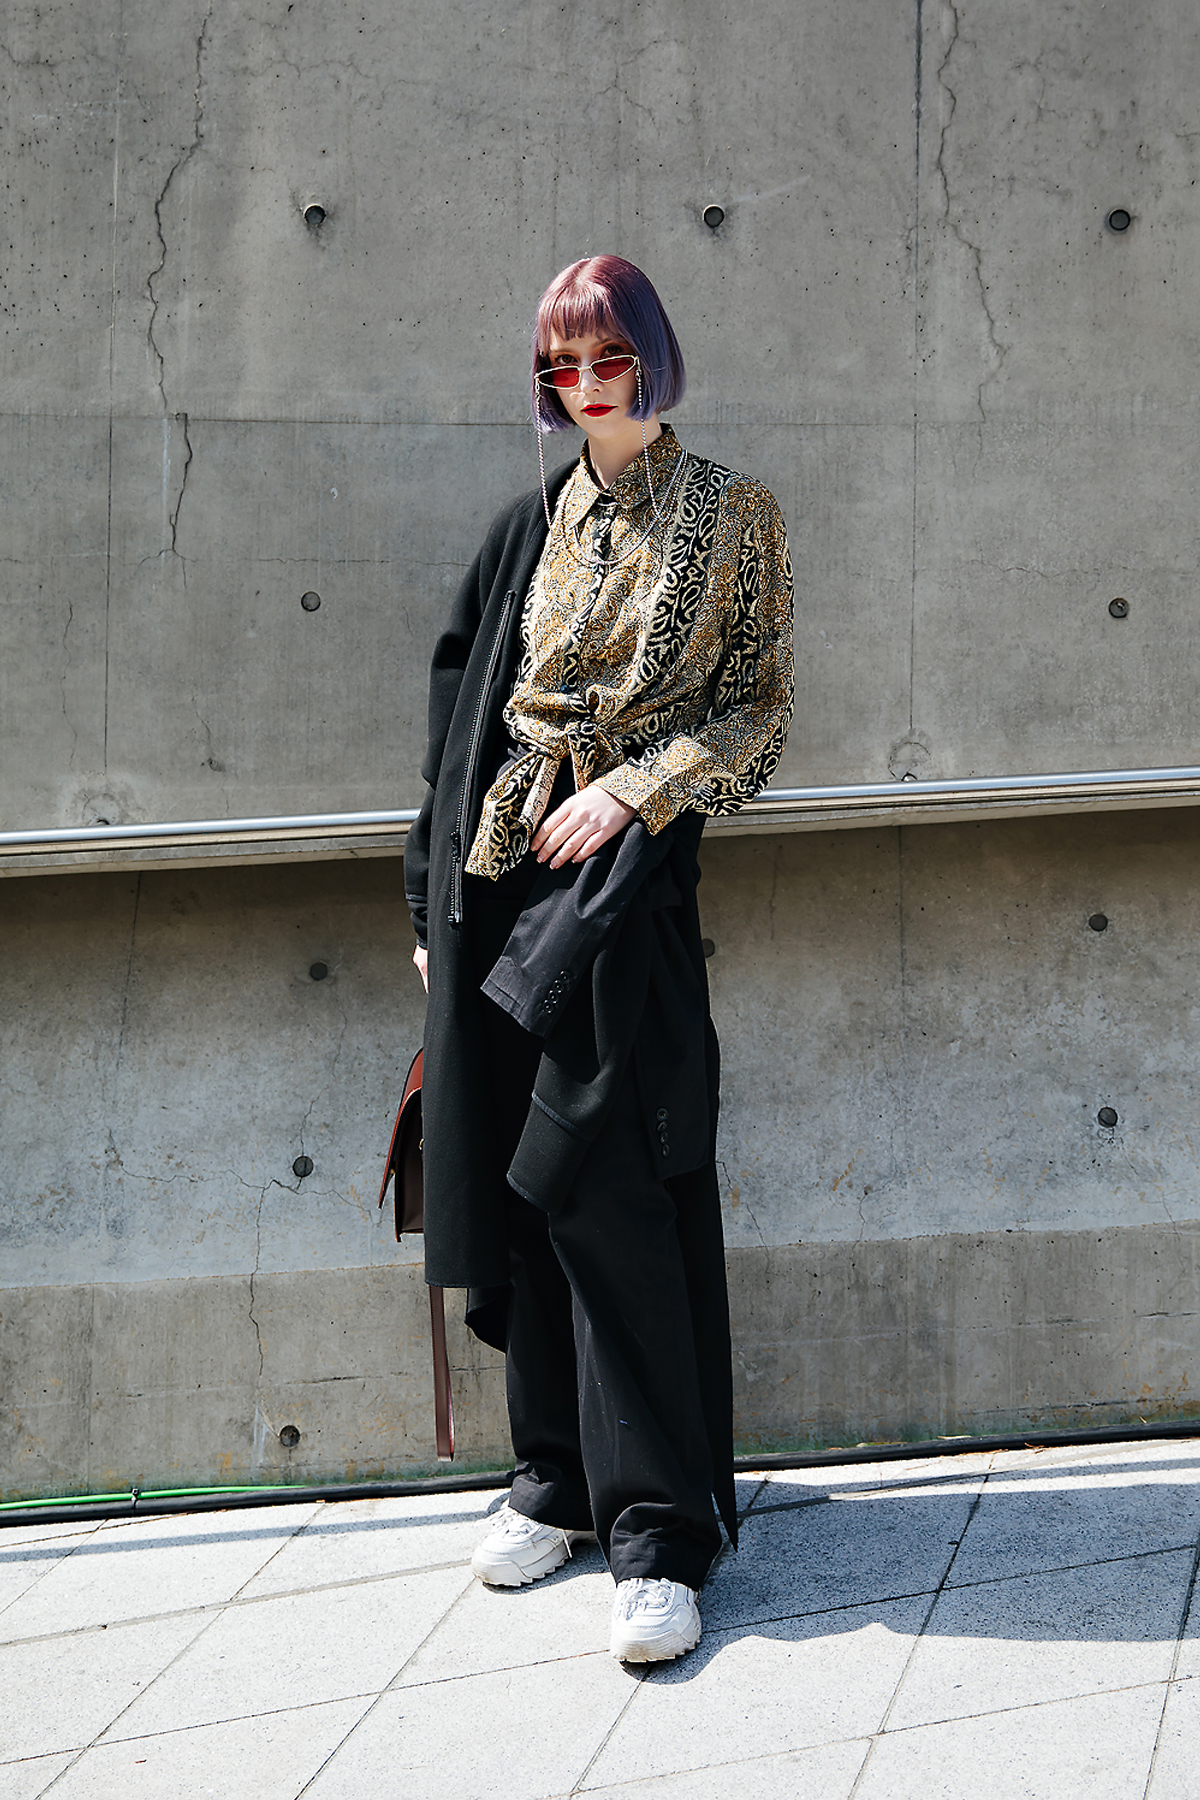 Kate white, SEOUL FASHION WEEK STREETWEAR WOMENS 2018FW